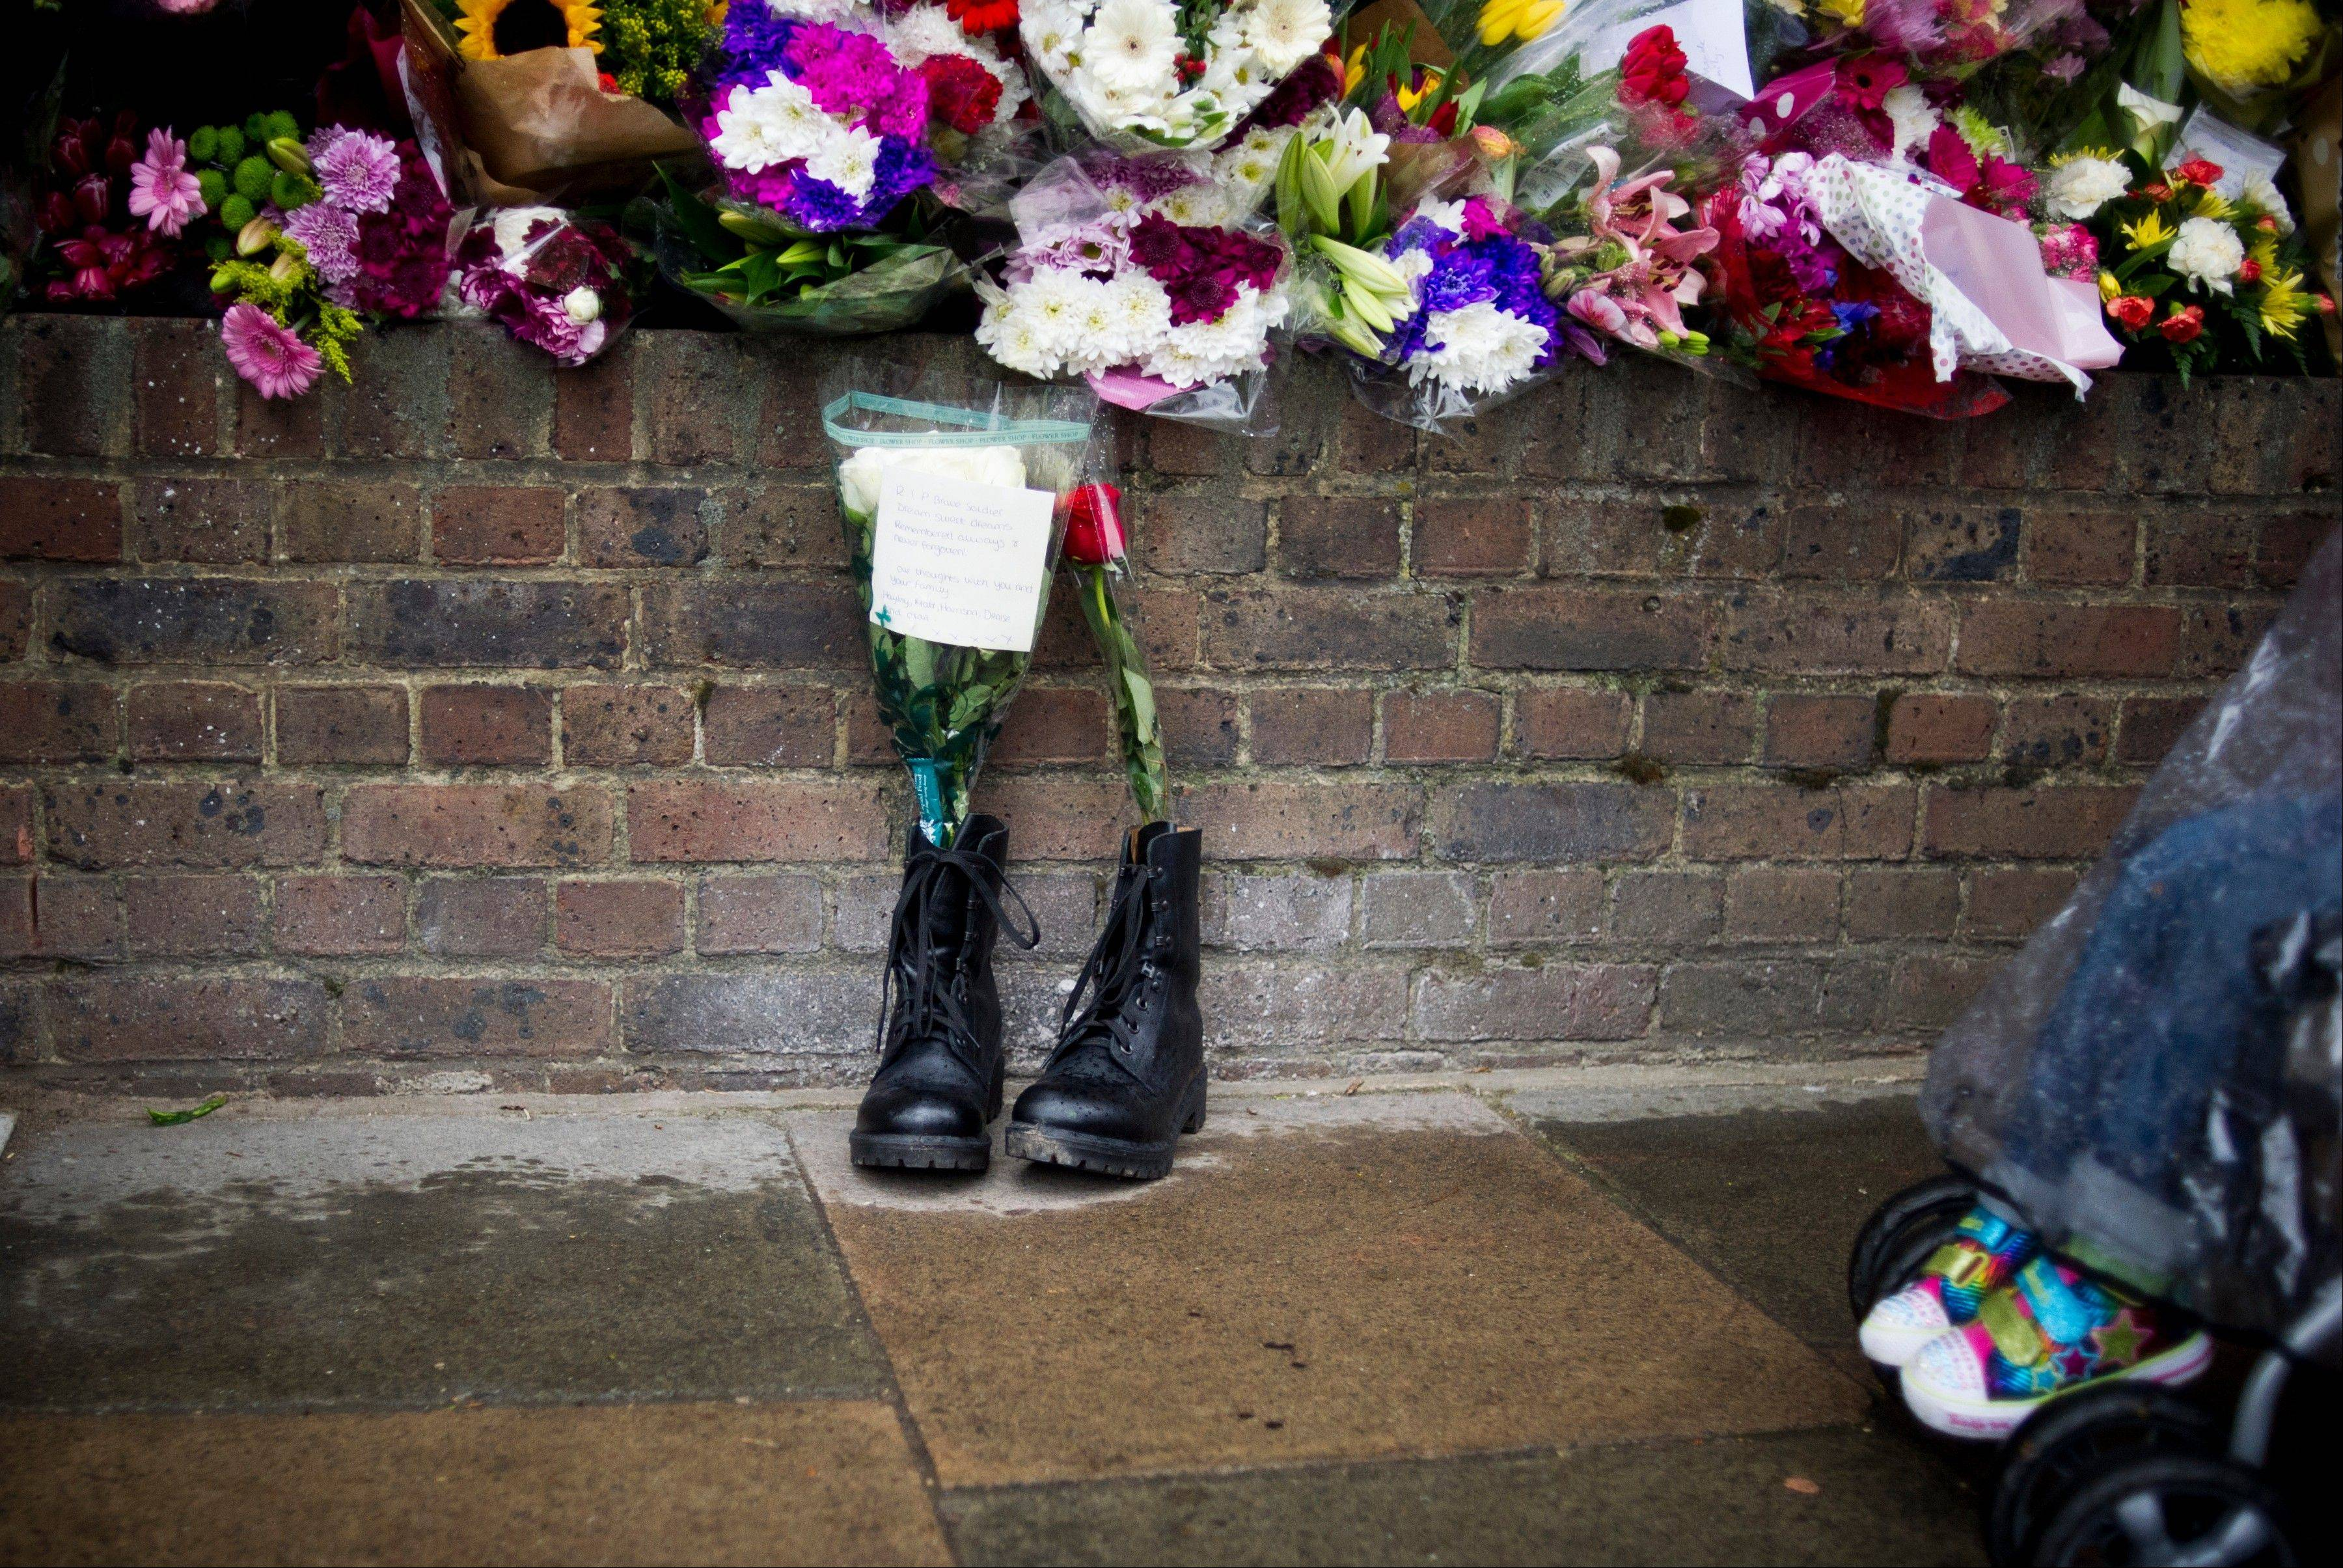 Military boots are laid in tribute outside the Woolwich Barracks, in London, in response to the bloody attack on Wednesday when a British soldier was killed in the nearby street. Counterterrorism police on Saturday were questioning a friend of Michael Adebolajo, one of two suspects in the savage killing of British soldier Lee Rigby.